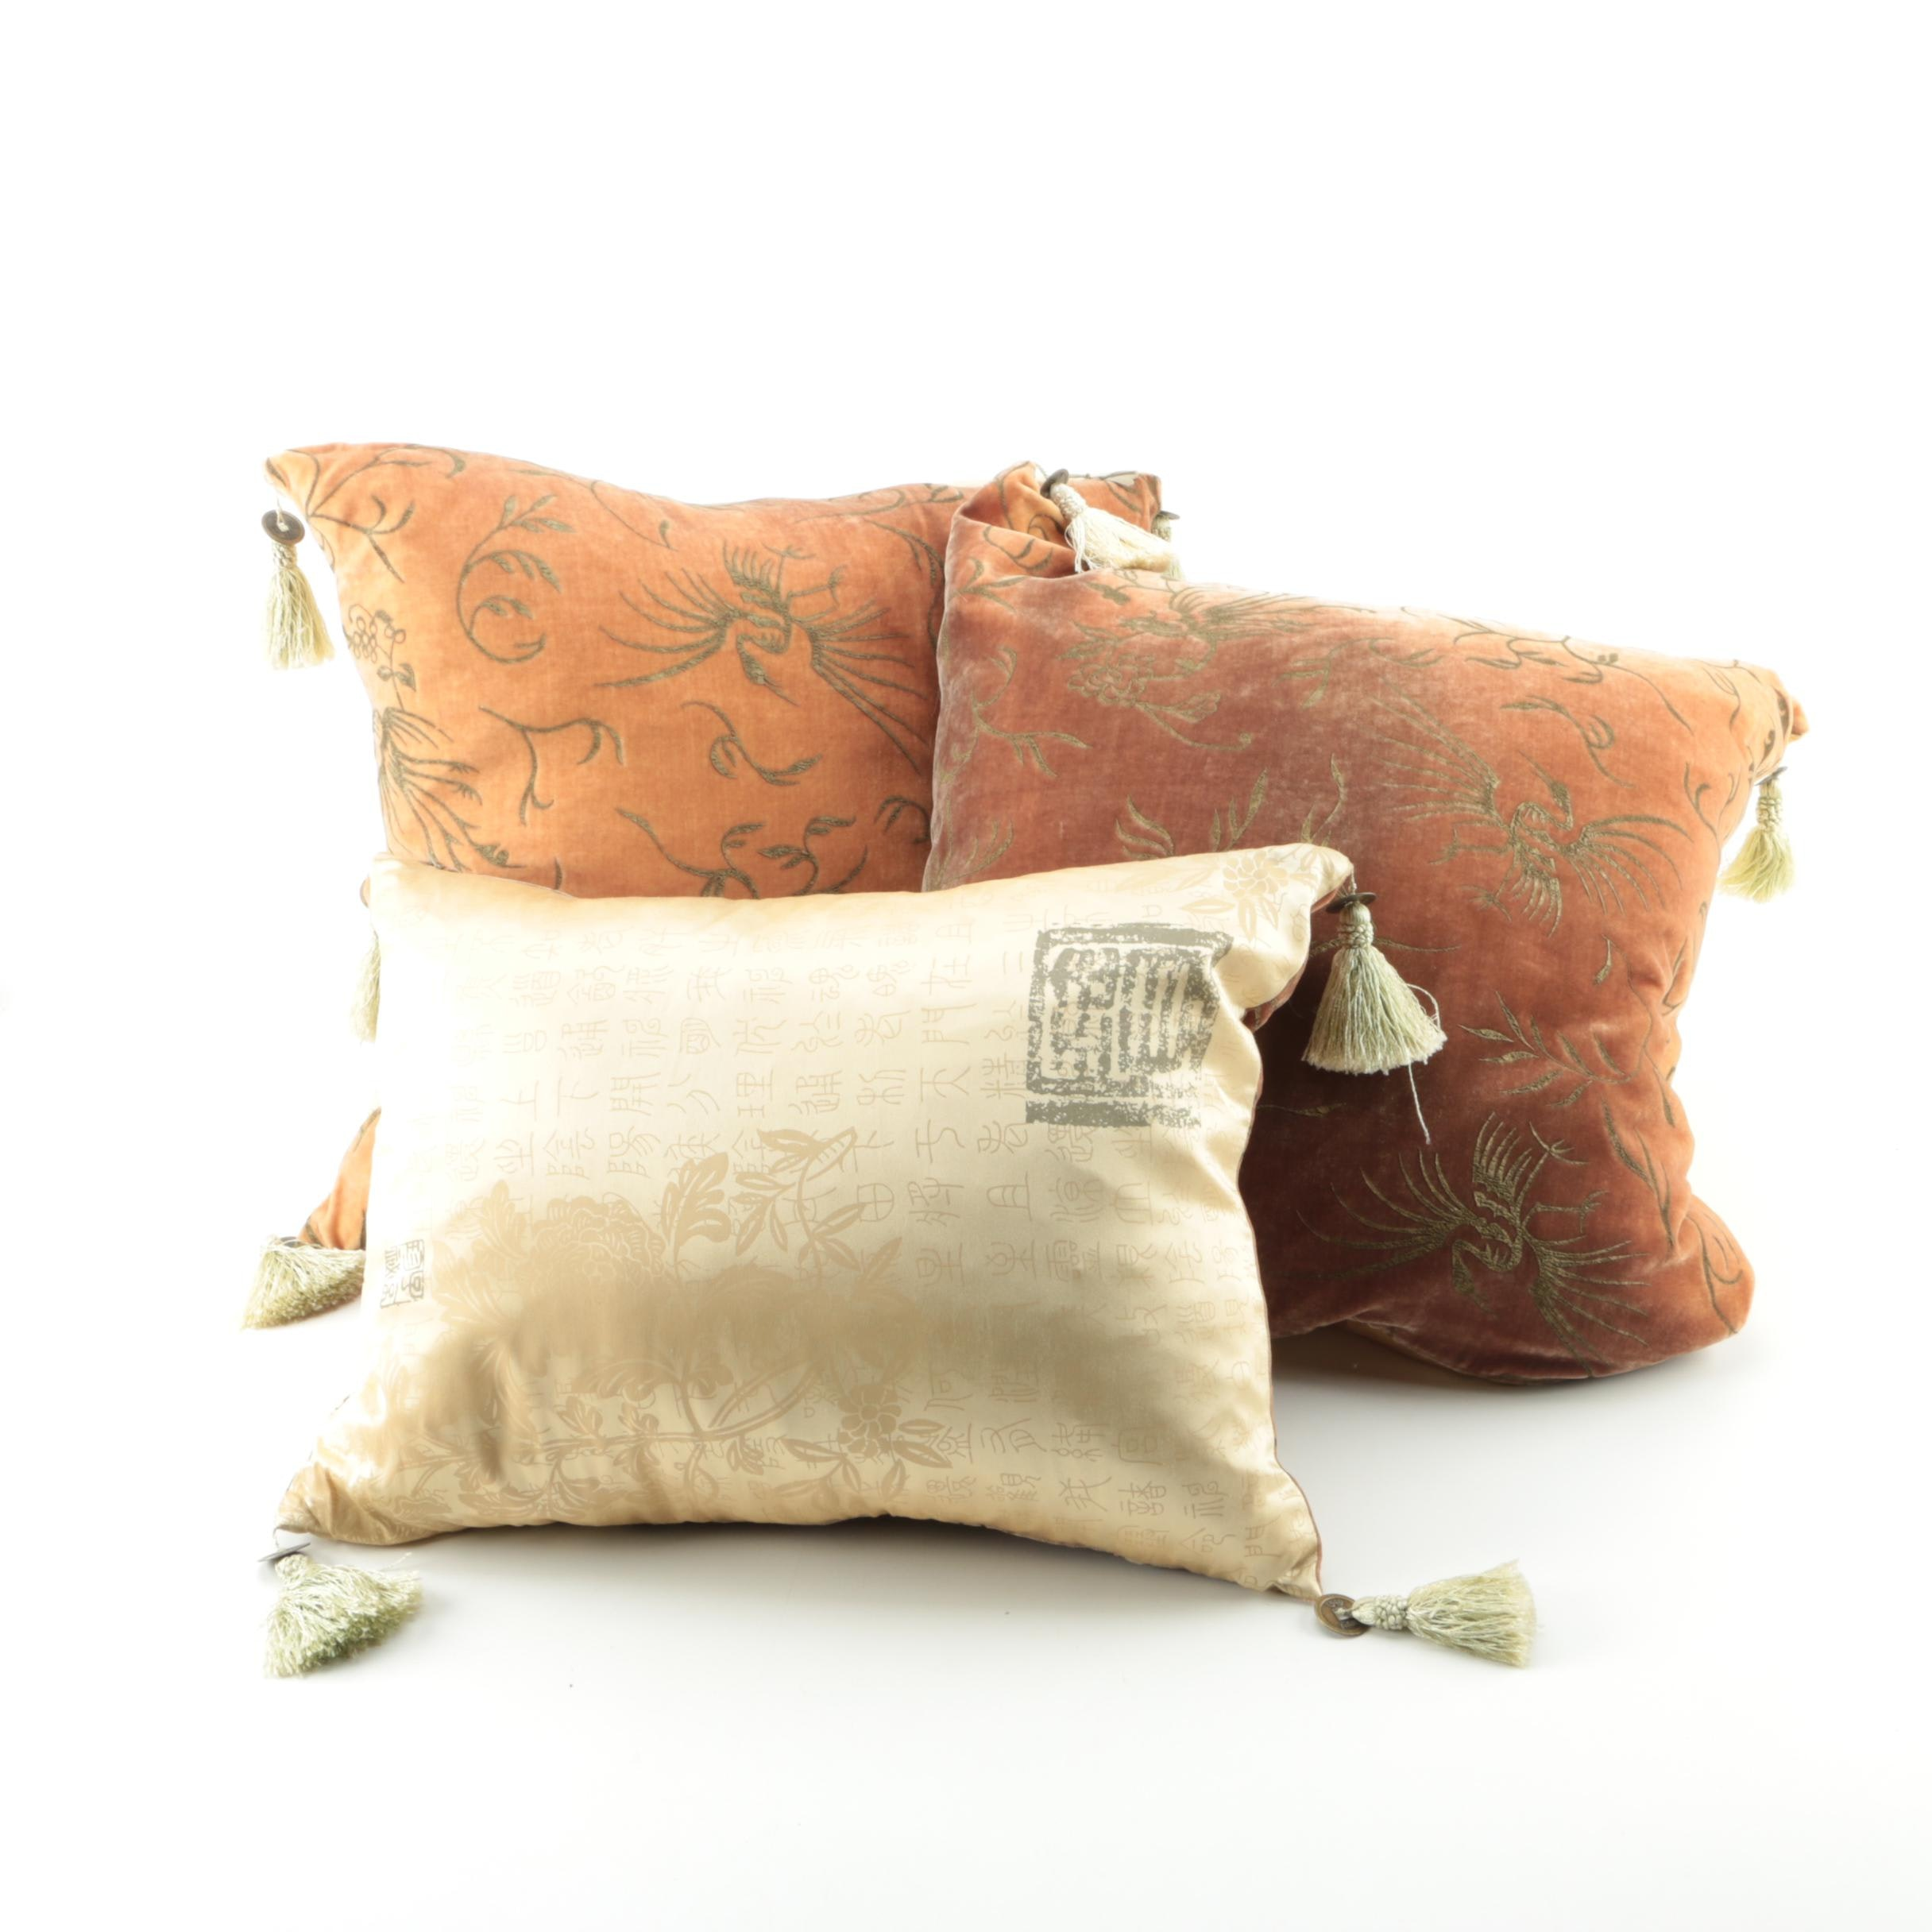 Decorative Asian Inspired Throw Pillows with Tassel Accents